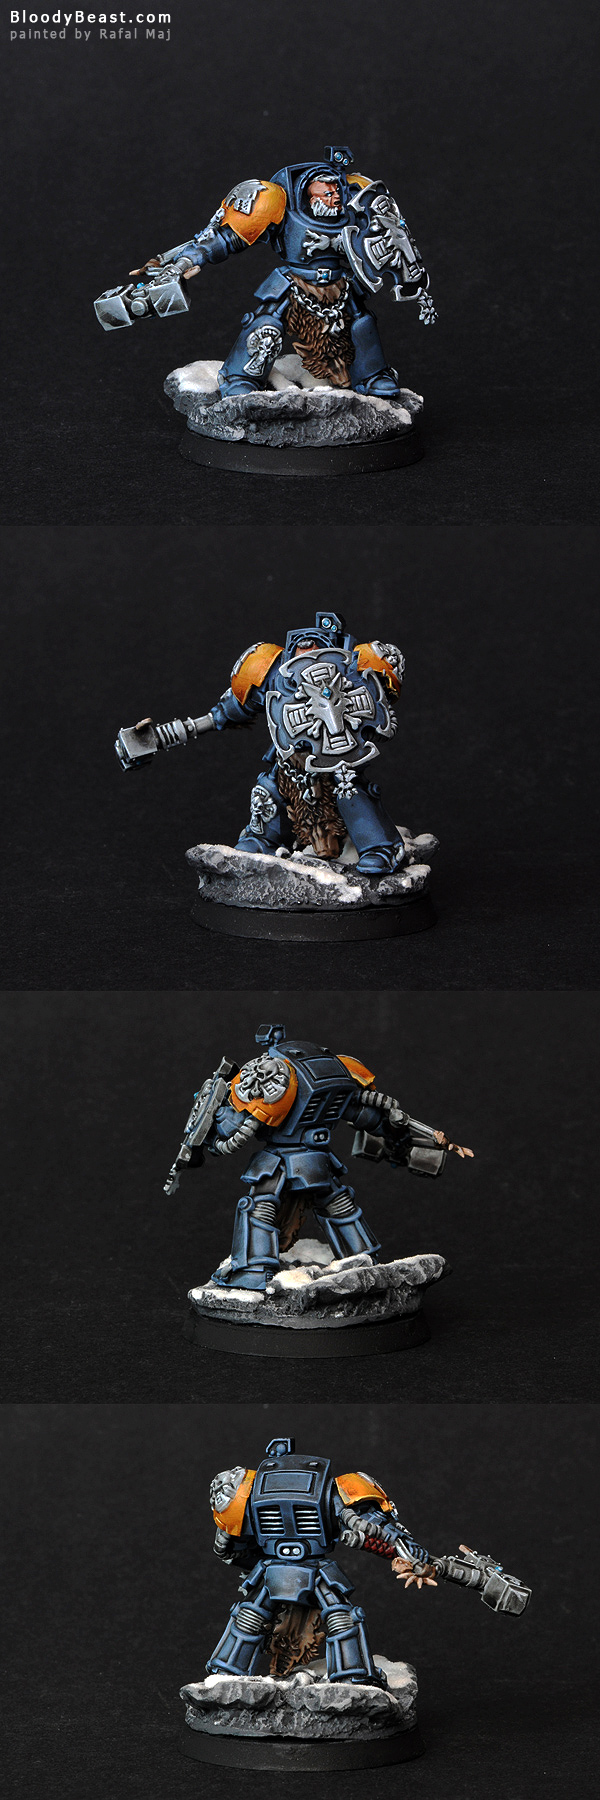 Space Wolves Guard with Hammer and Shield painted by Rafal Maj (BloodyBeast.com)